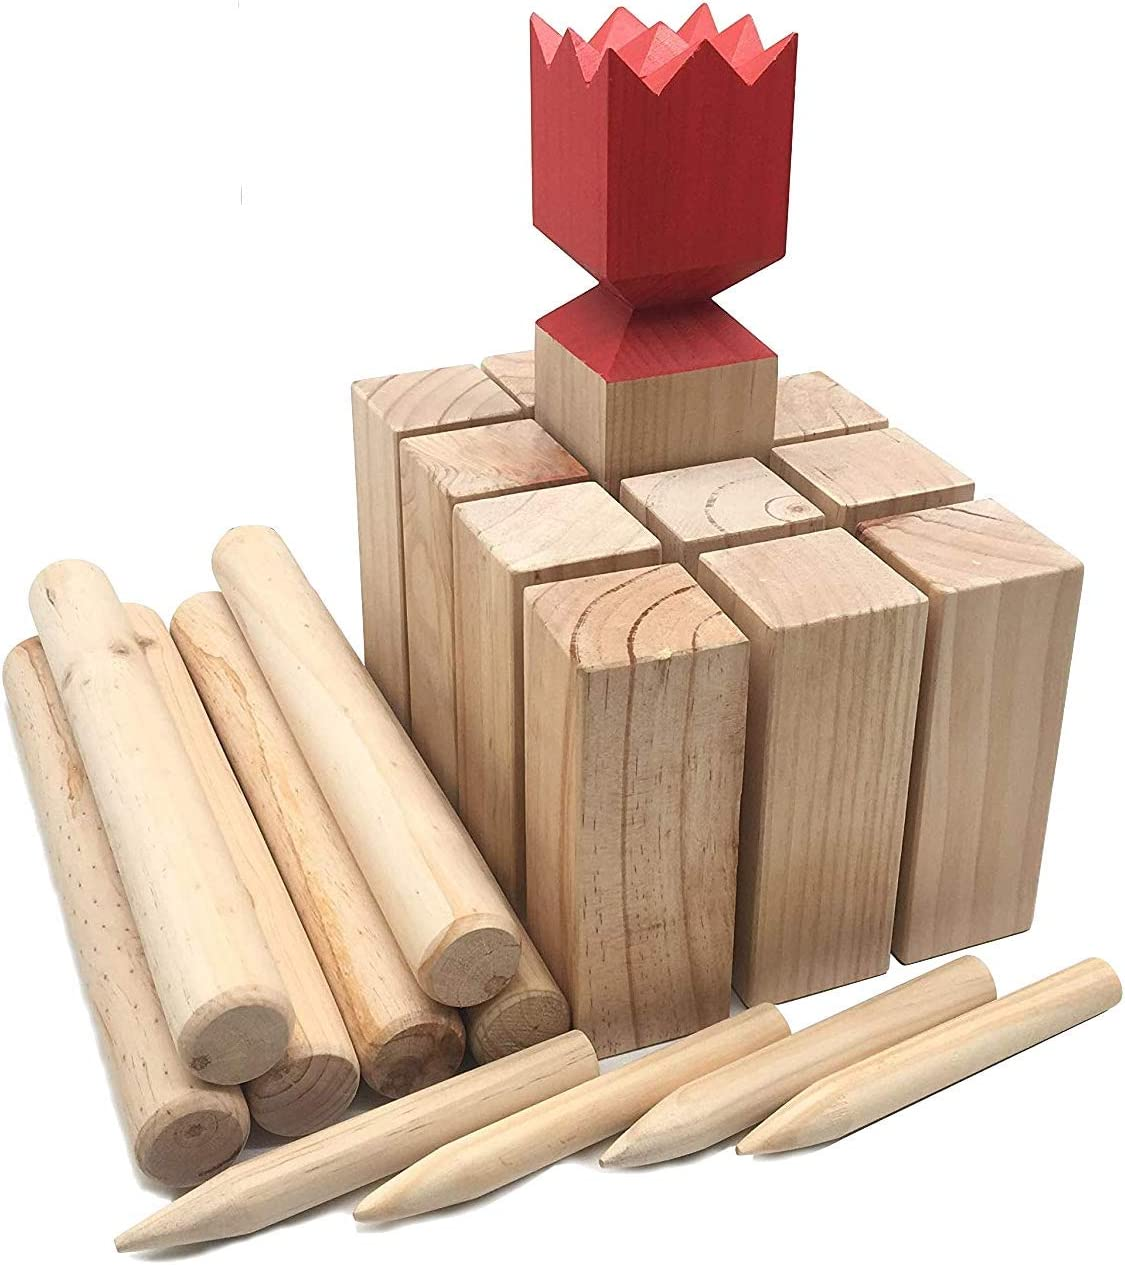 GYMAX Kubb Game Set Outdoor Viking Chess Sets for Yard Garden Lawn /& Beach Wooden Kubb Throwing Family /& Party Game